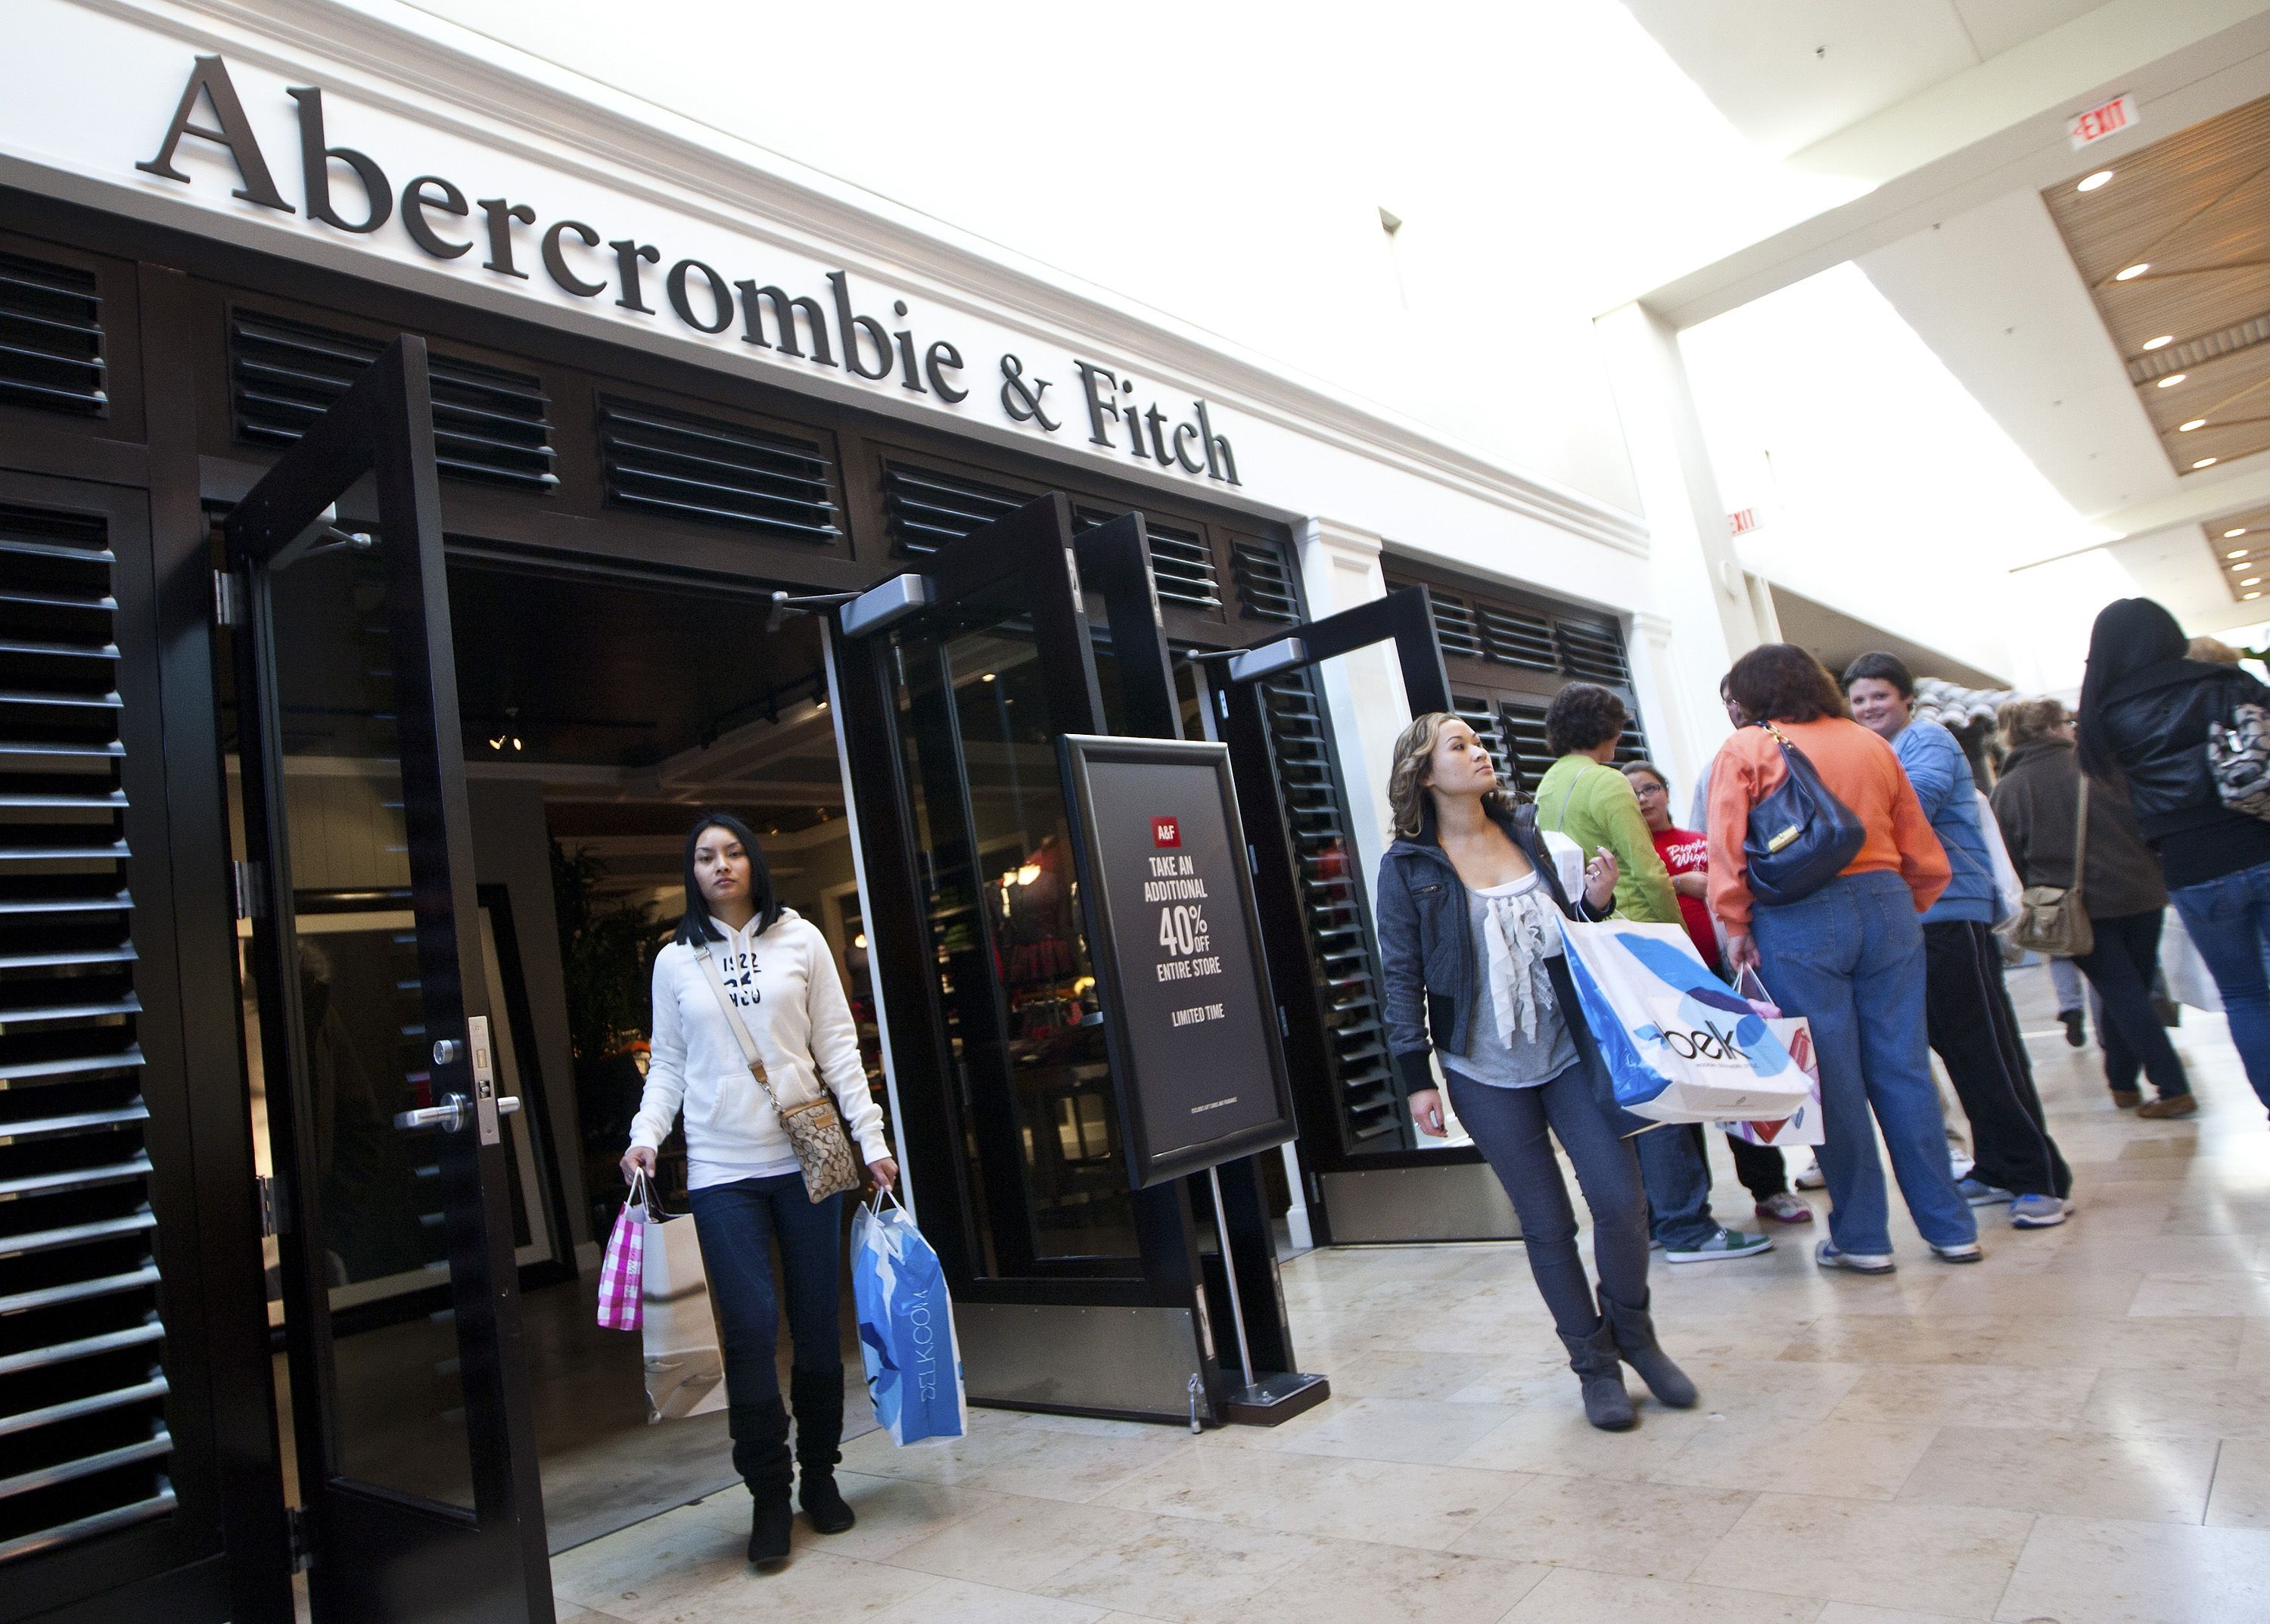 Abercrombie & Fitch will sell GGB's CBD products in over 160 stores